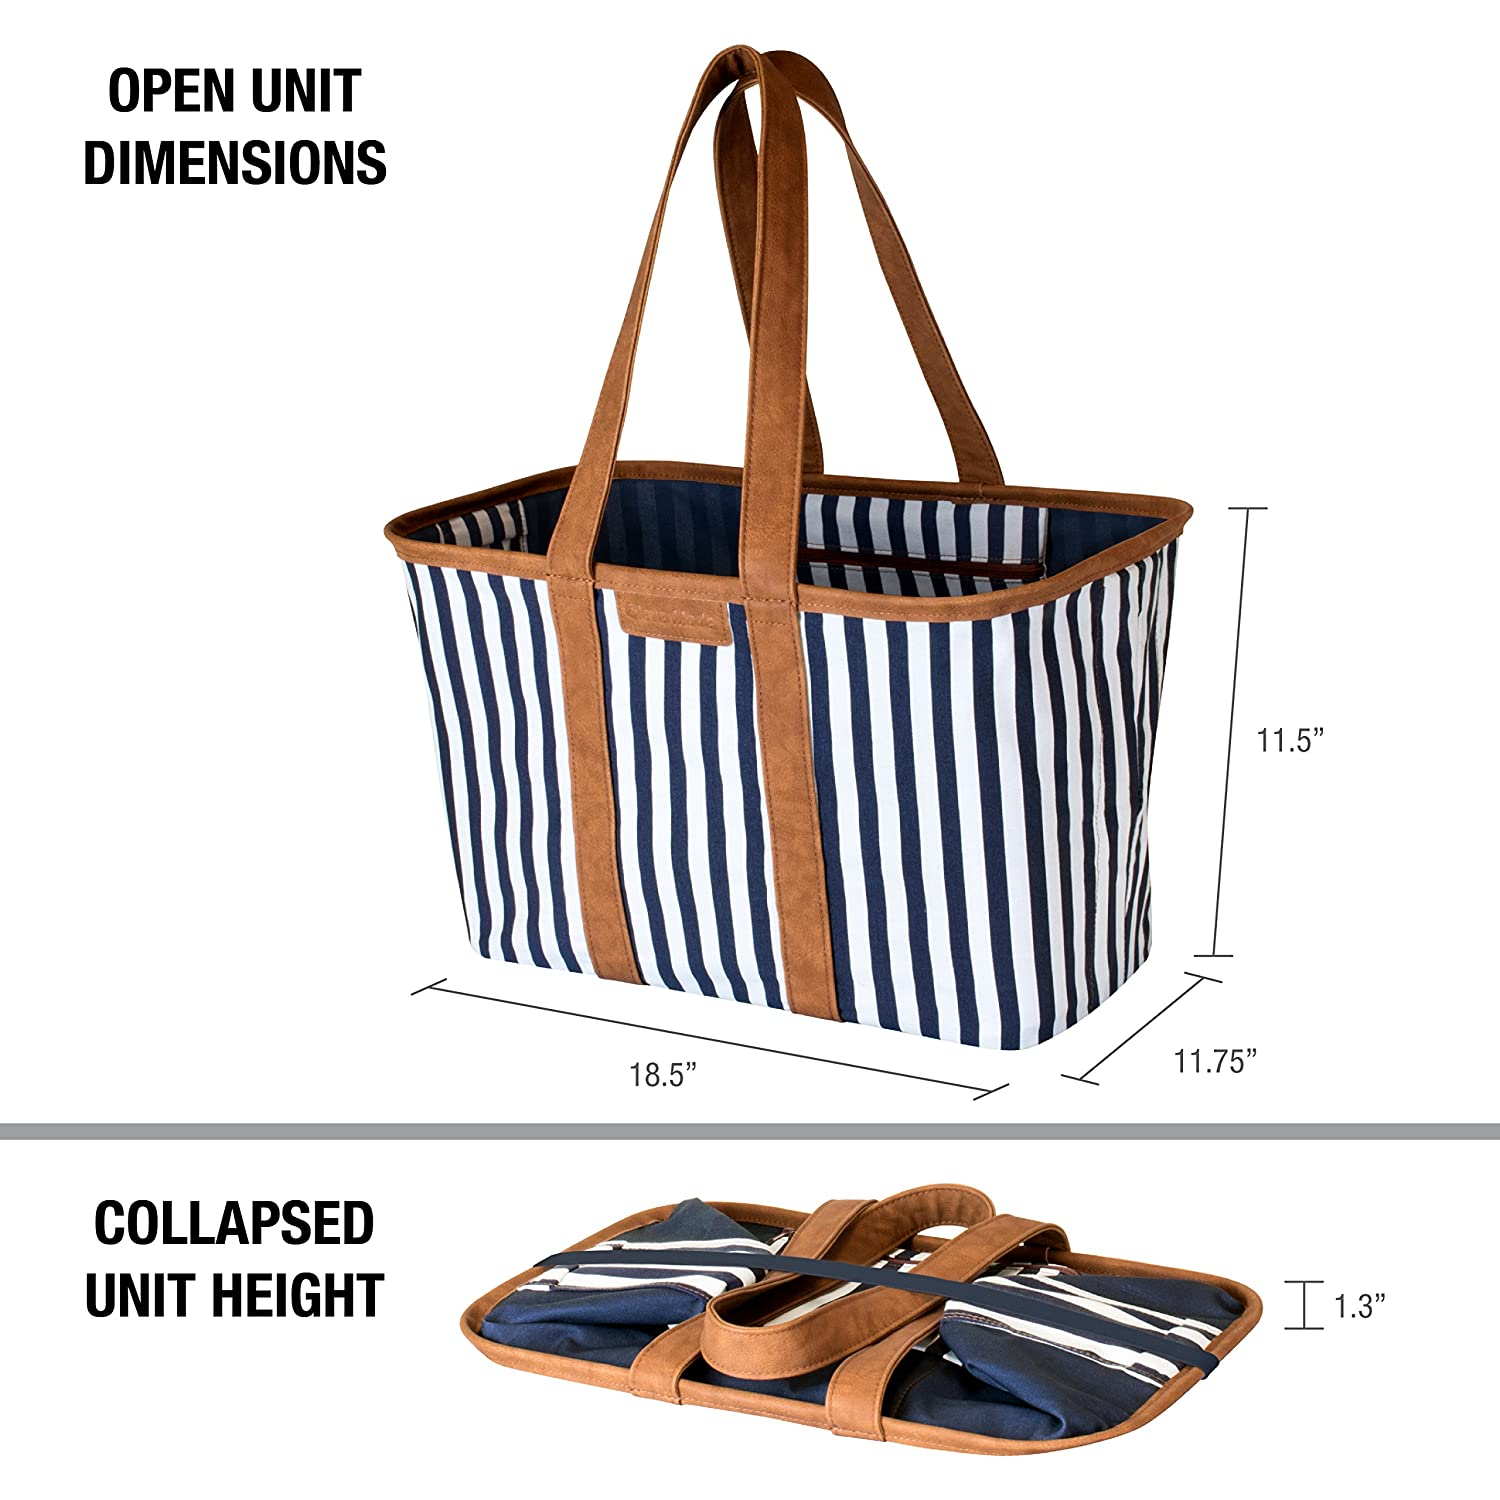 CleverMade 30L SnapBasket LUXE Reusable Collapsible Durable Grocery Shopping Bag Nautical Heavy Duty Large Structured Tote